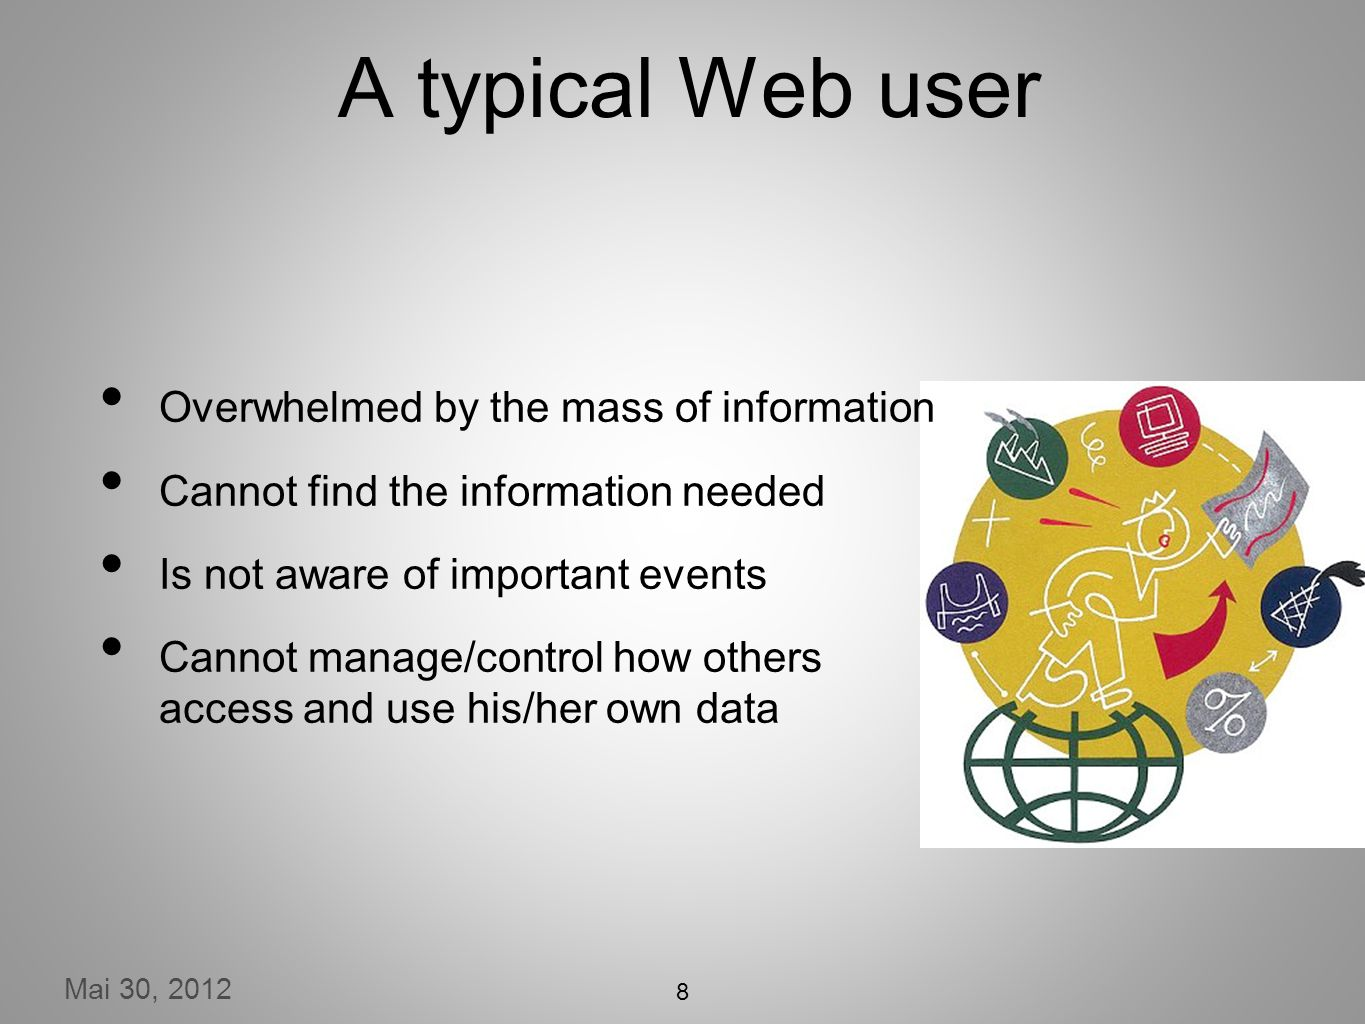 Mai 30, 2012 A typical Web user Overwhelmed by the mass of information Cannot find the information needed Is not aware of important events Cannot manage/control how others access and use his/her own data 8